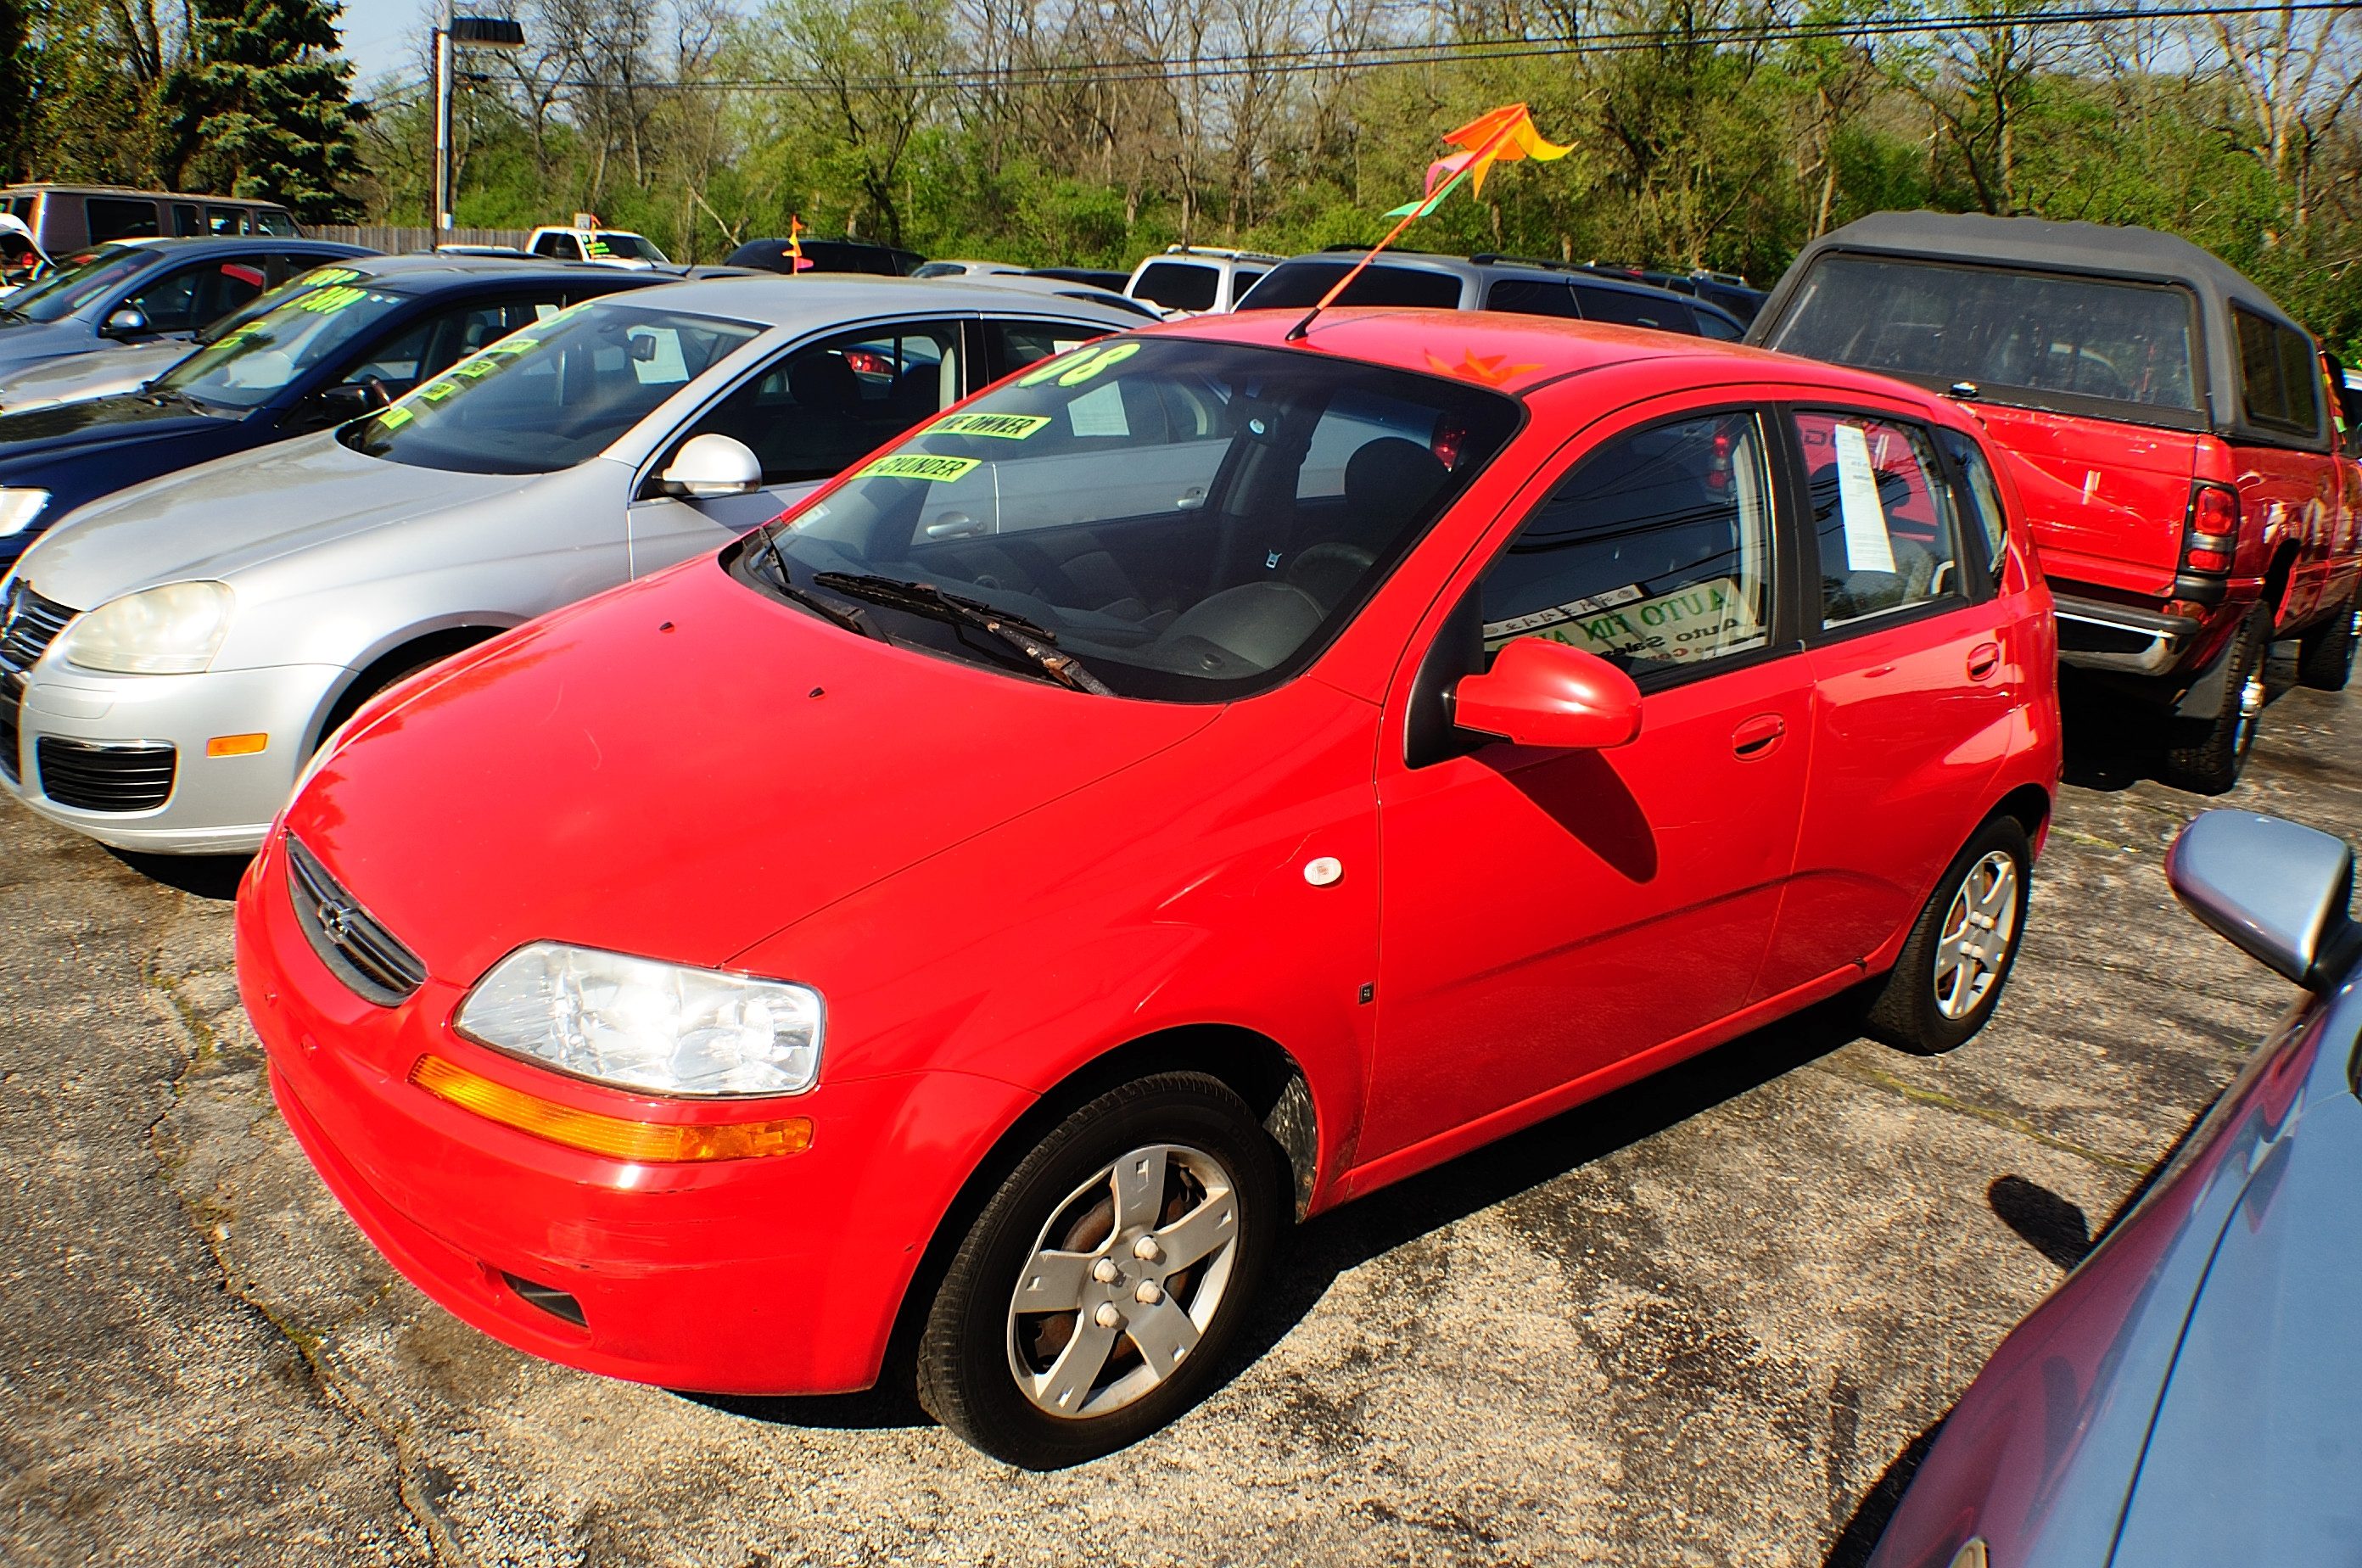 2008 Chevrolet Aveo Red Manual Used Compact car sale Addison Algonquin Arlington Heights Bartlett